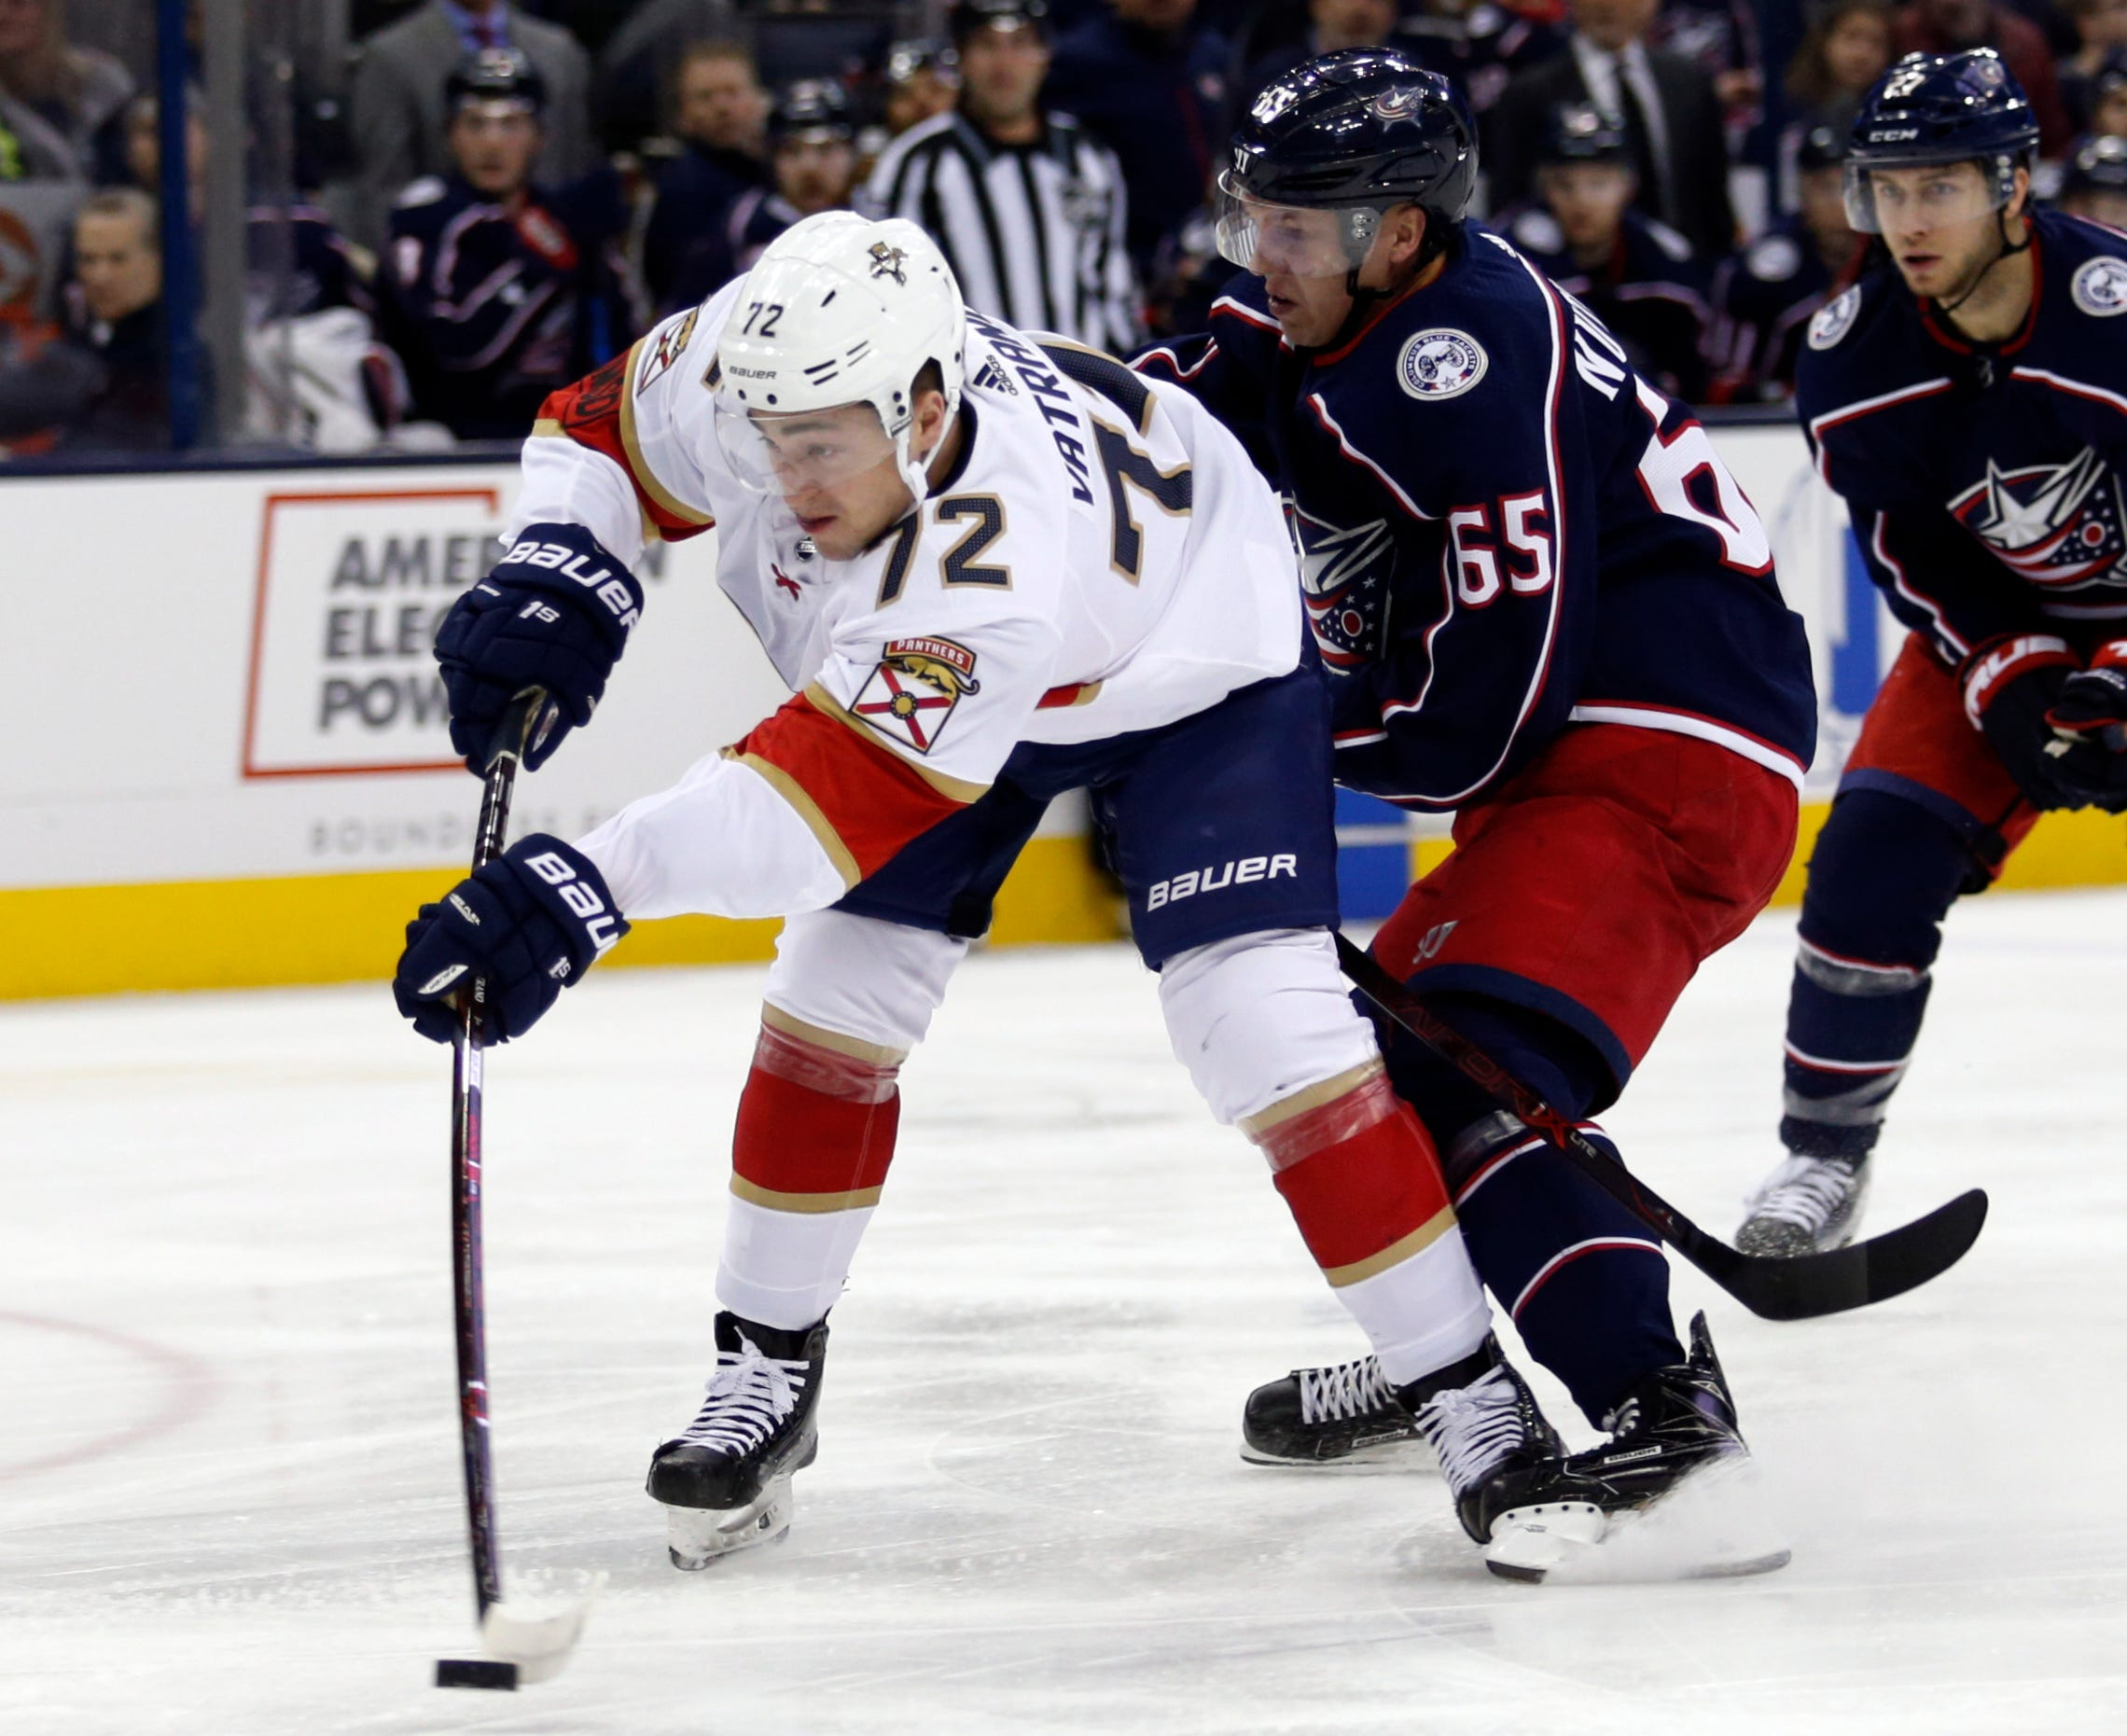 Blue Jackets shut out Panthers 4-0 for 10th straight win